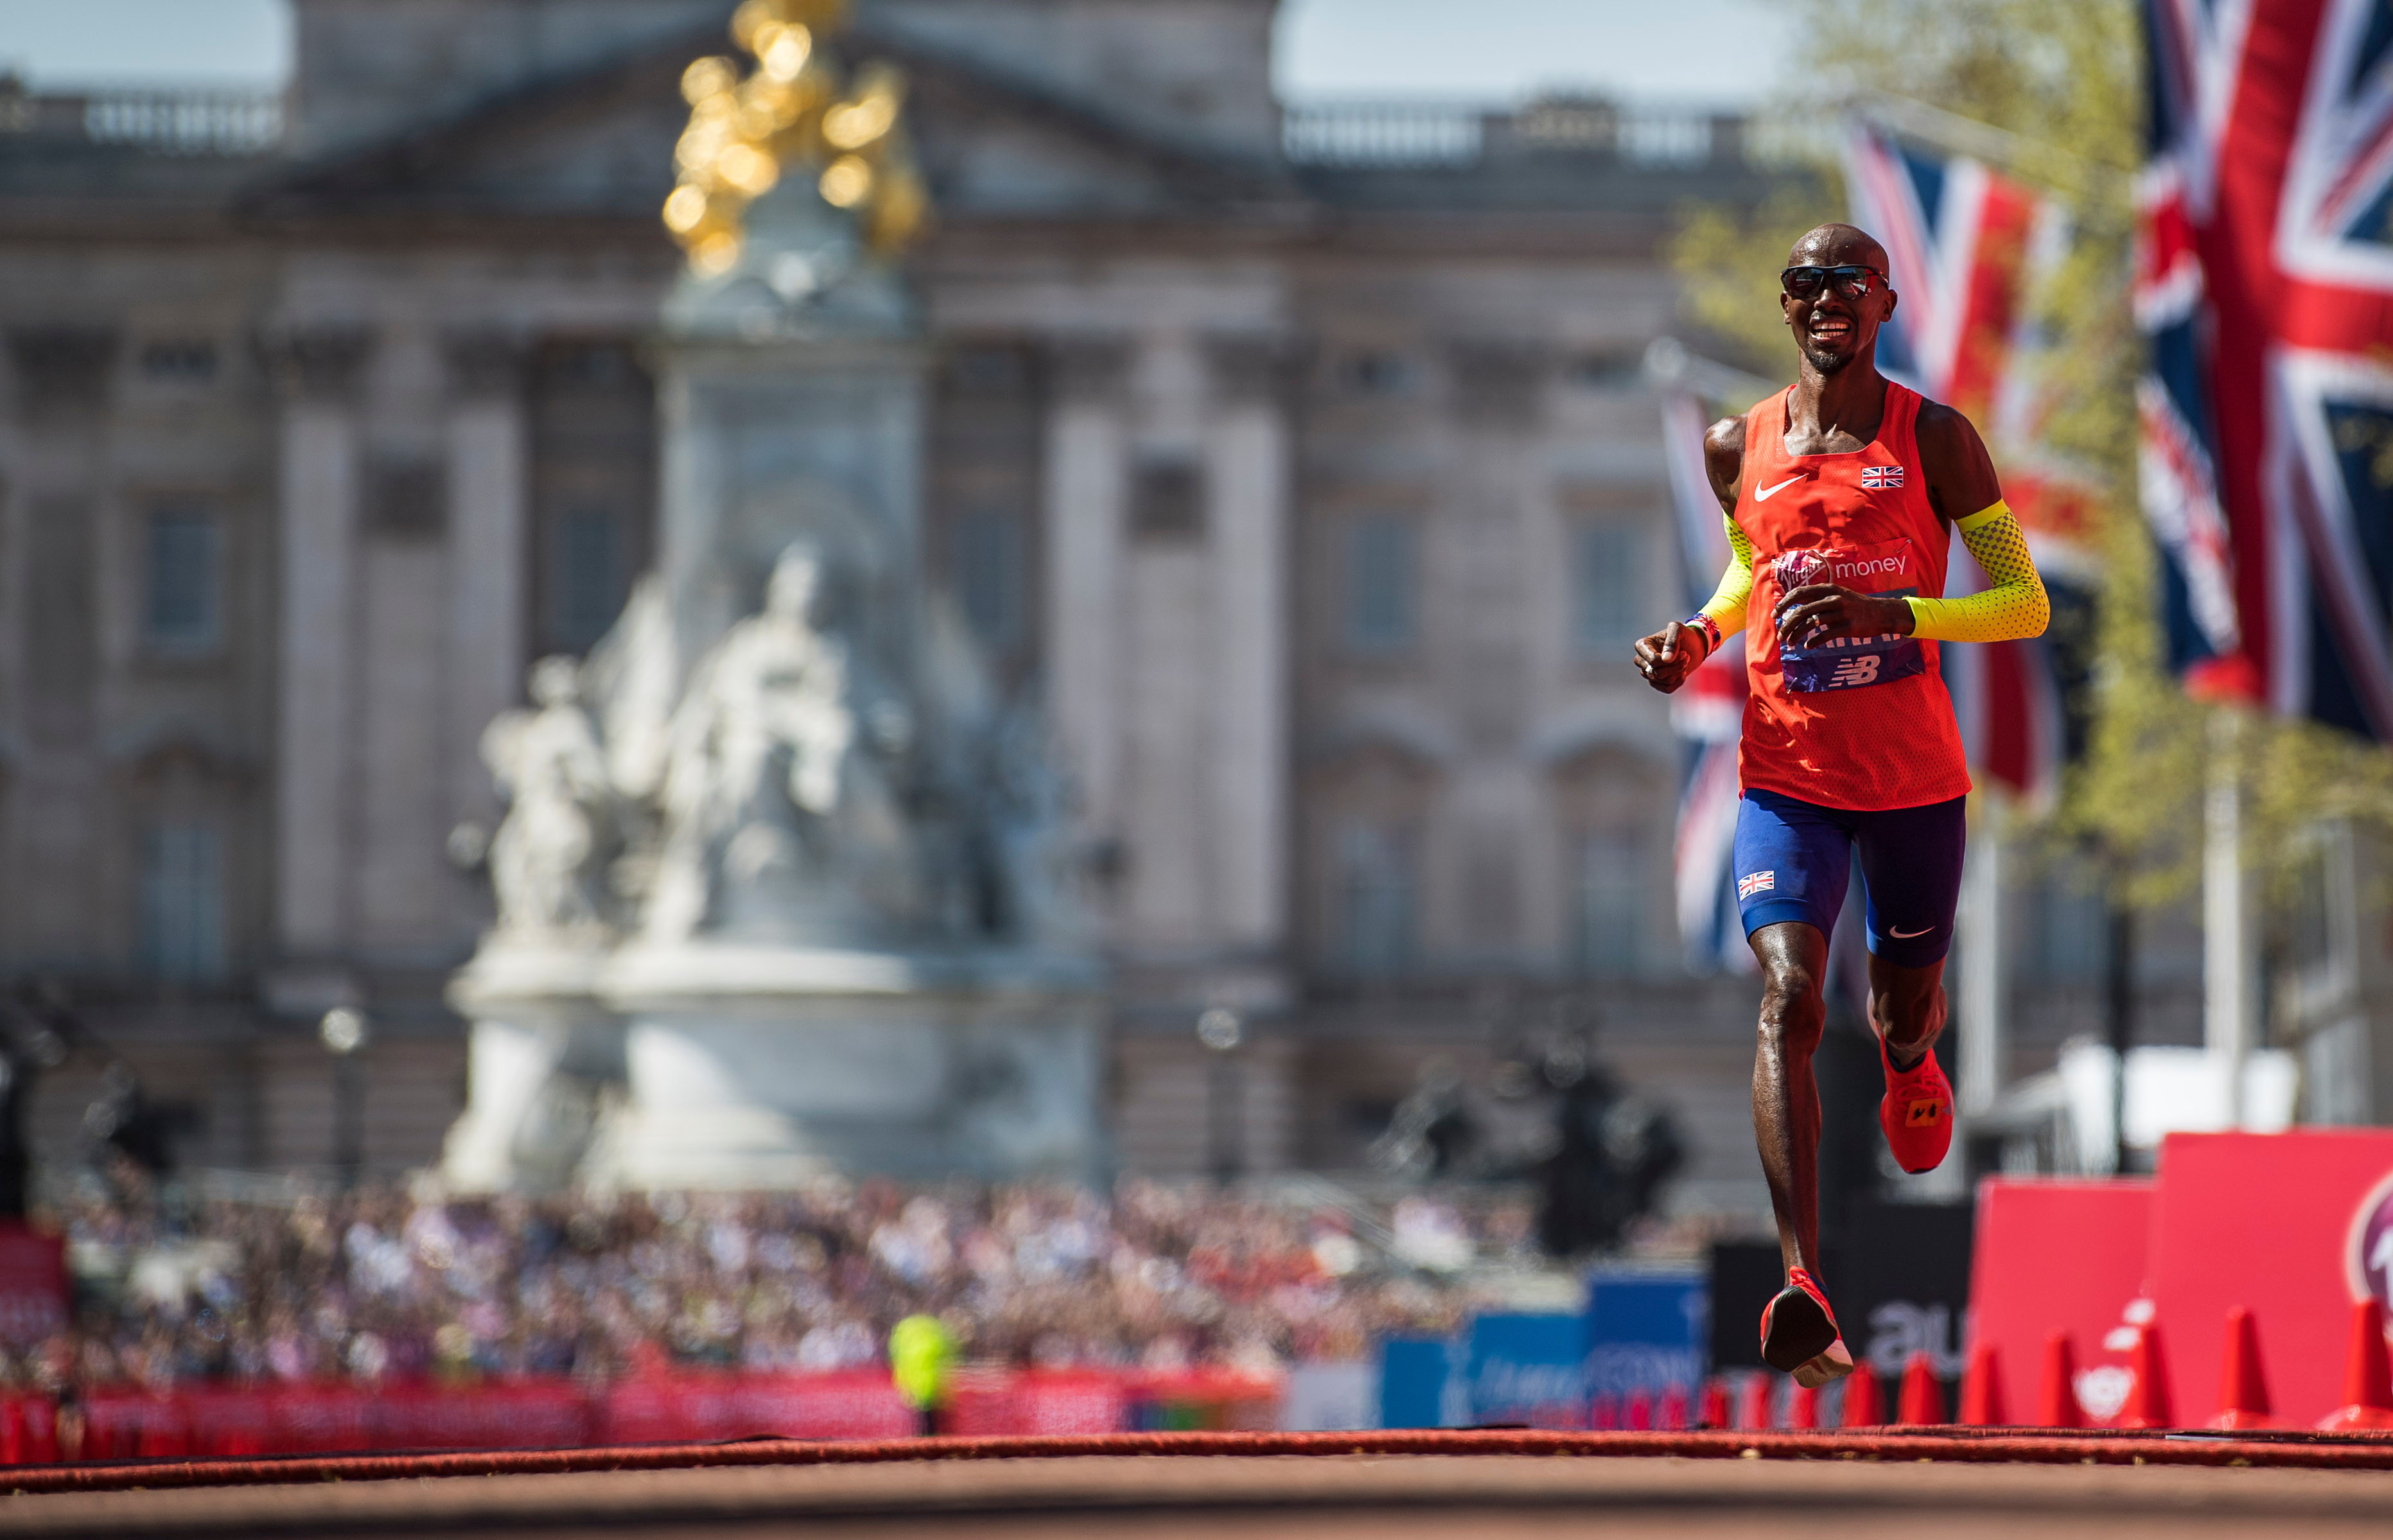 Farah has been competing in marathons but will now return to the track